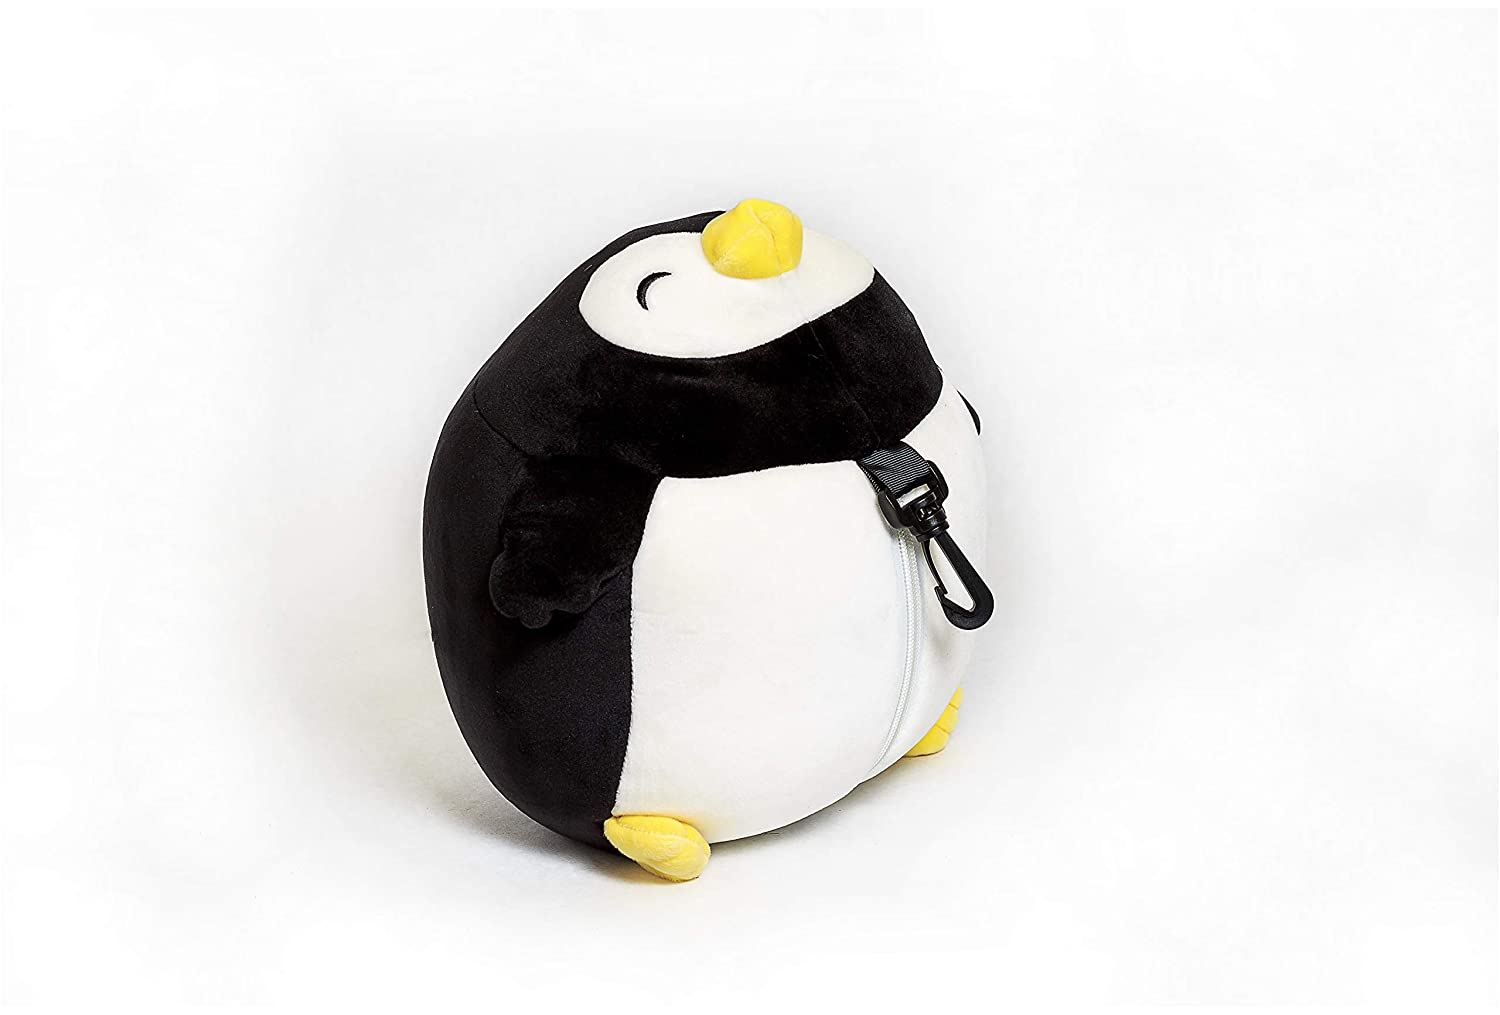 Moaly Zip and Flip U Shaped Head Support Neck Comfort Penguin Travel Pillow White